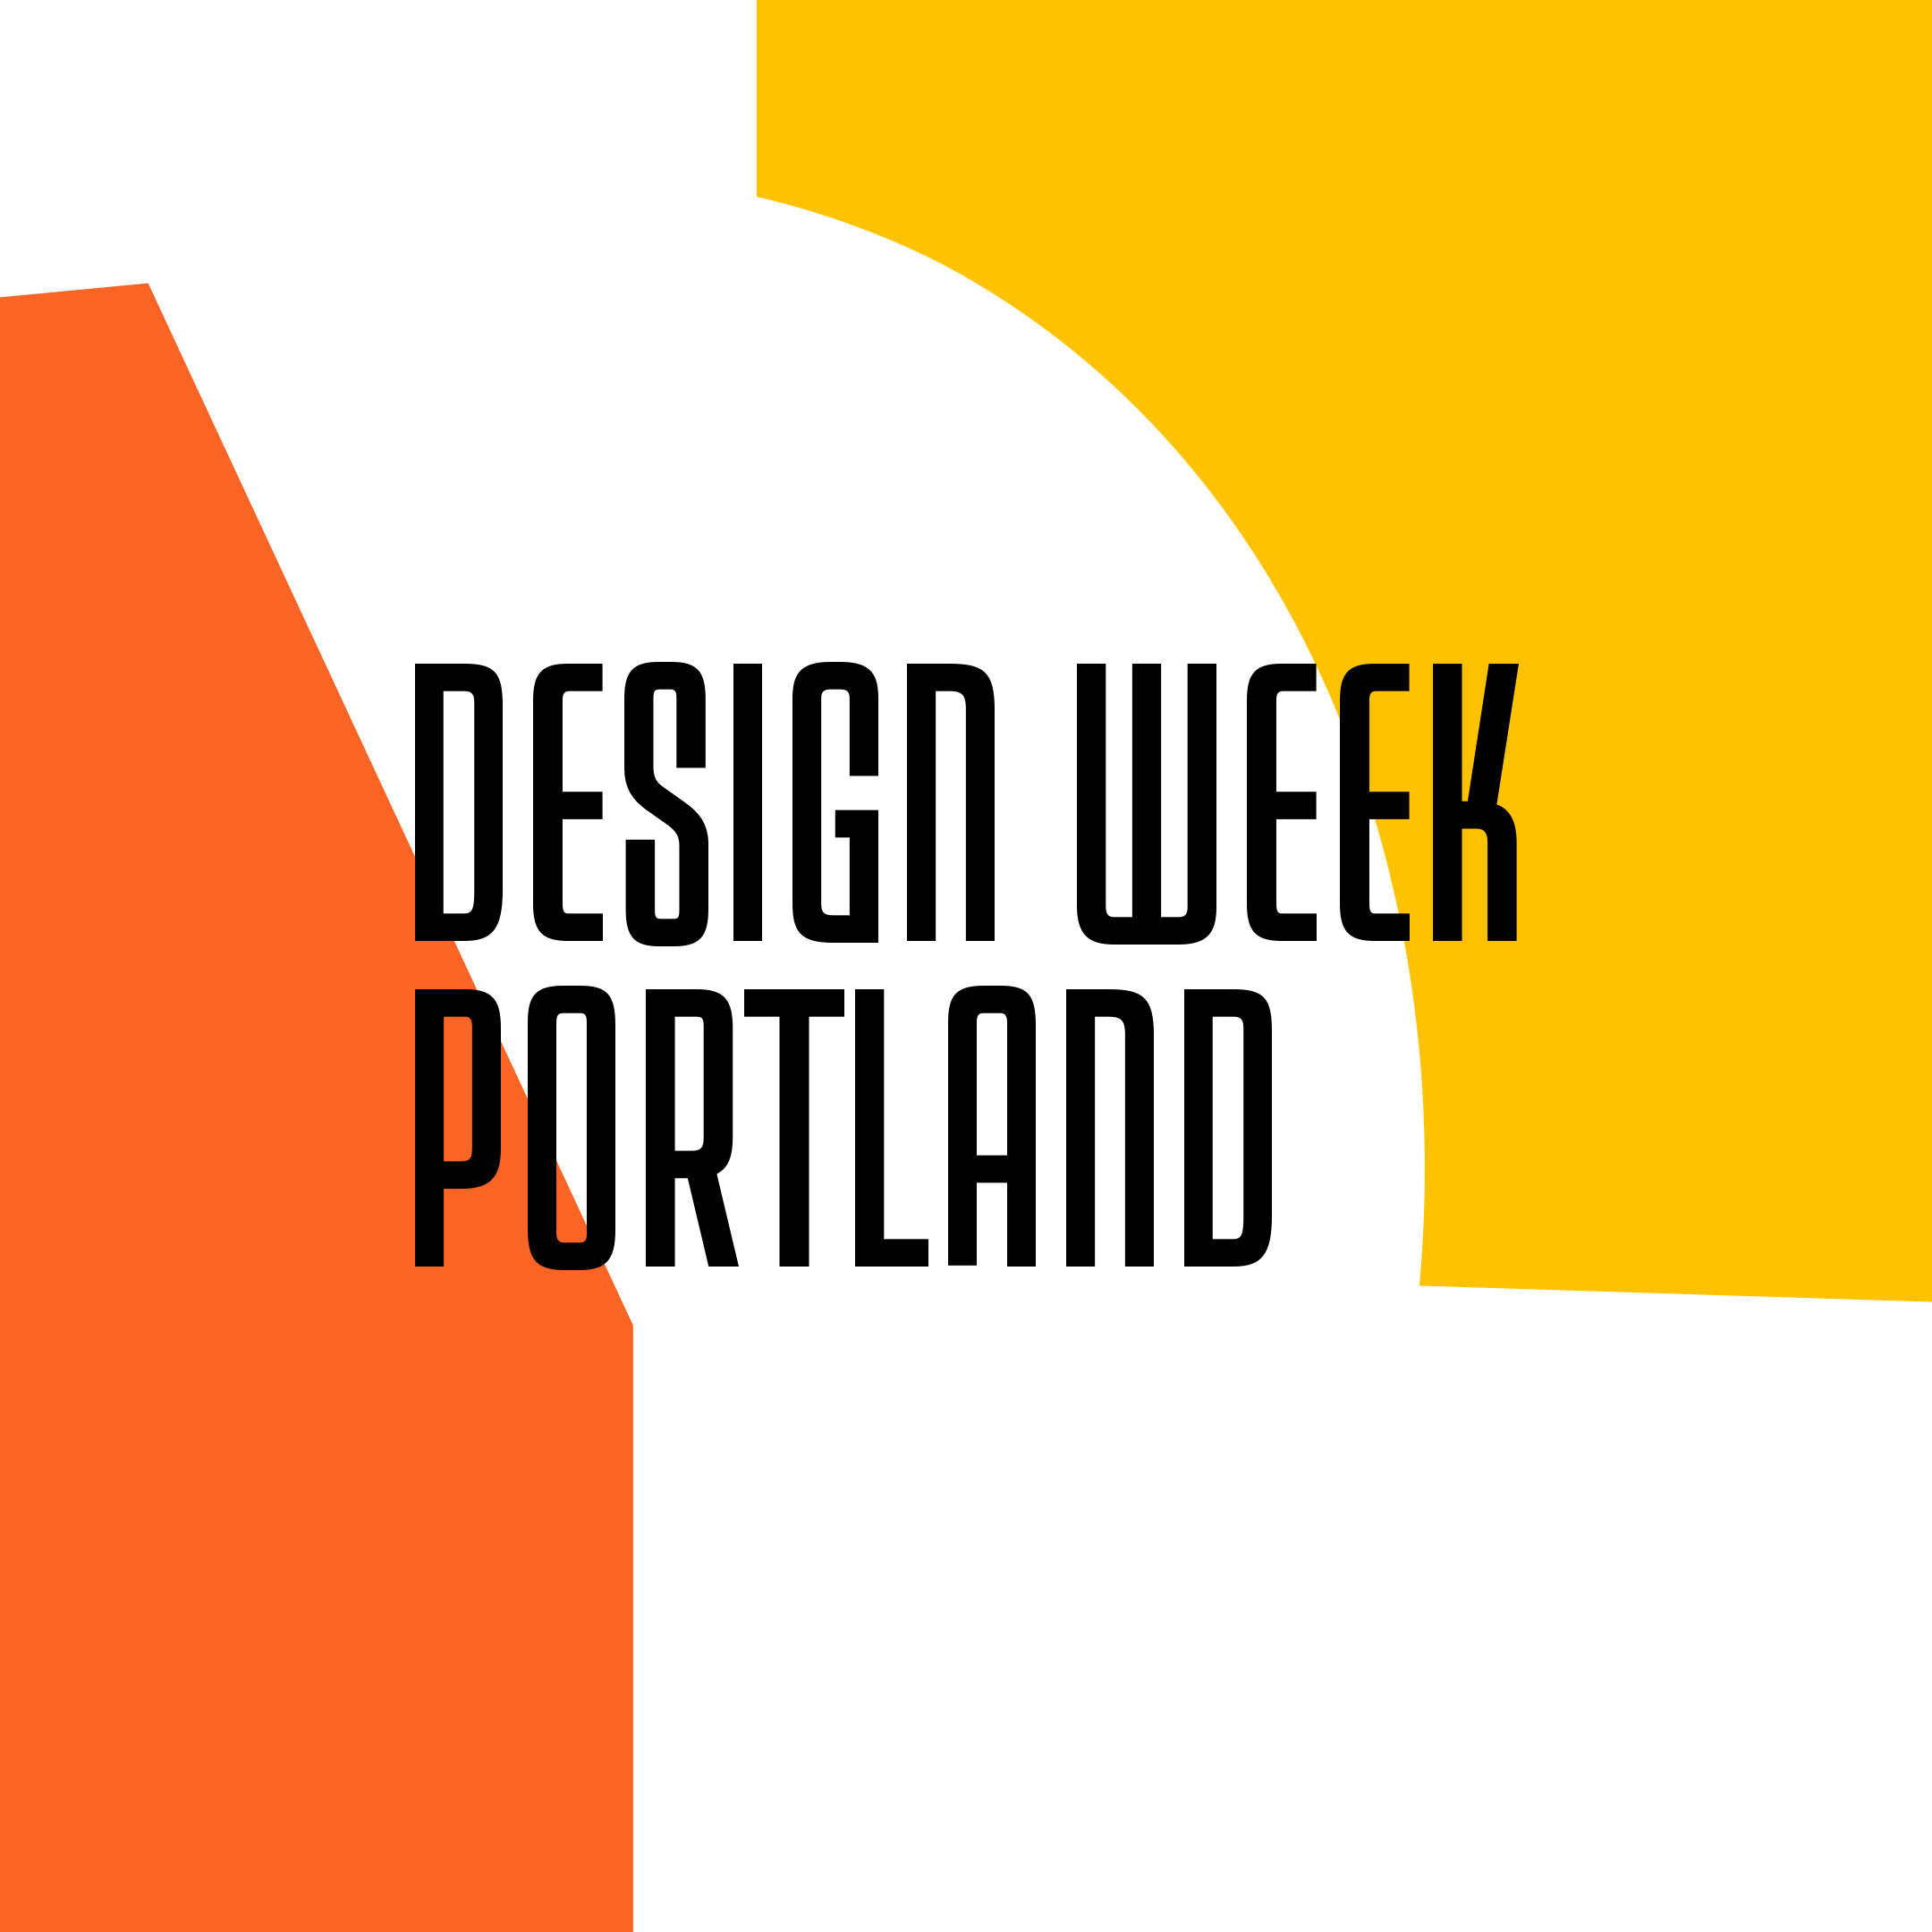 open-house-design-week-portland-assembly